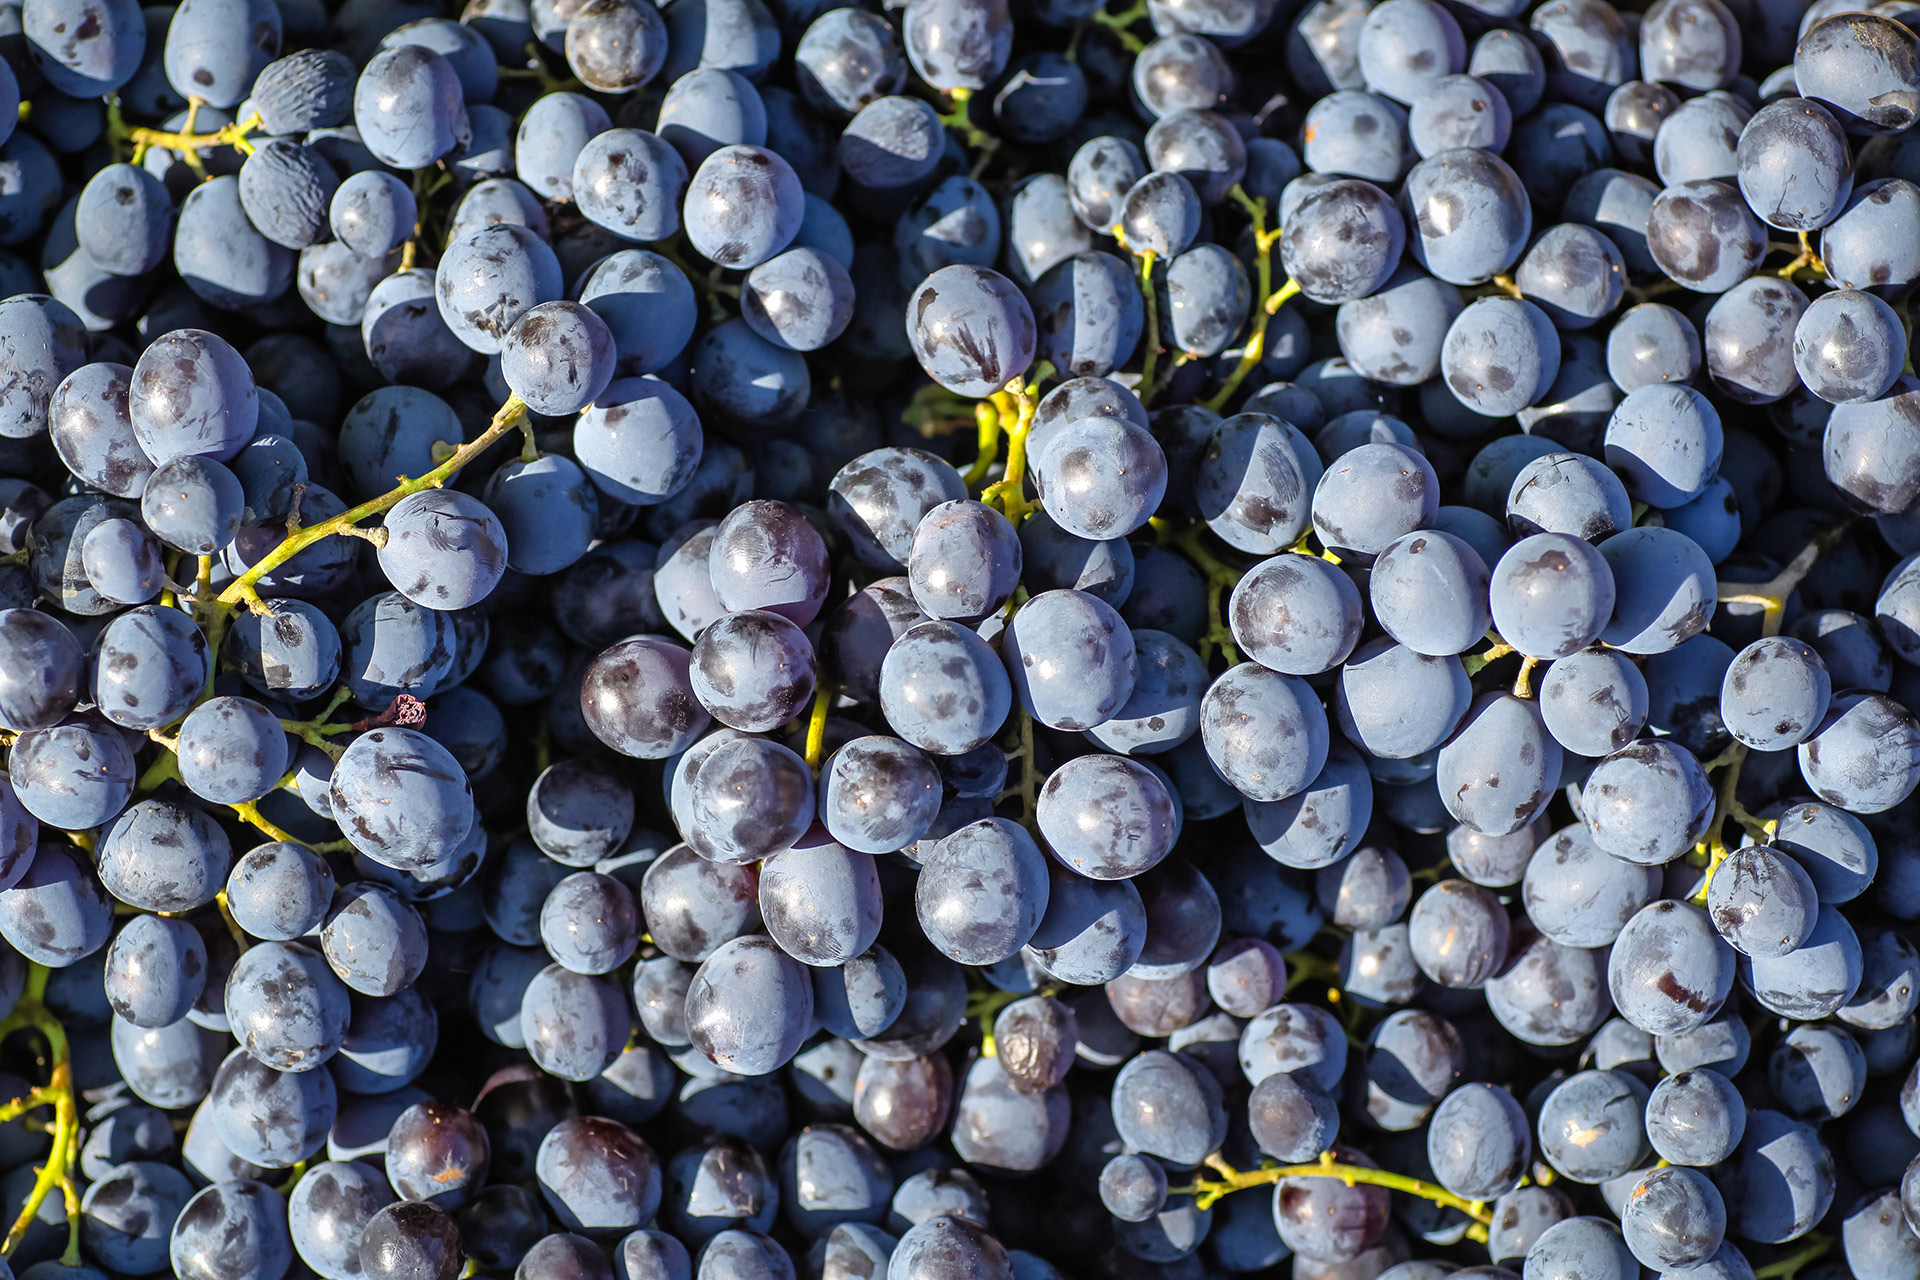 Red Wine Grapes For Sale in Bulk